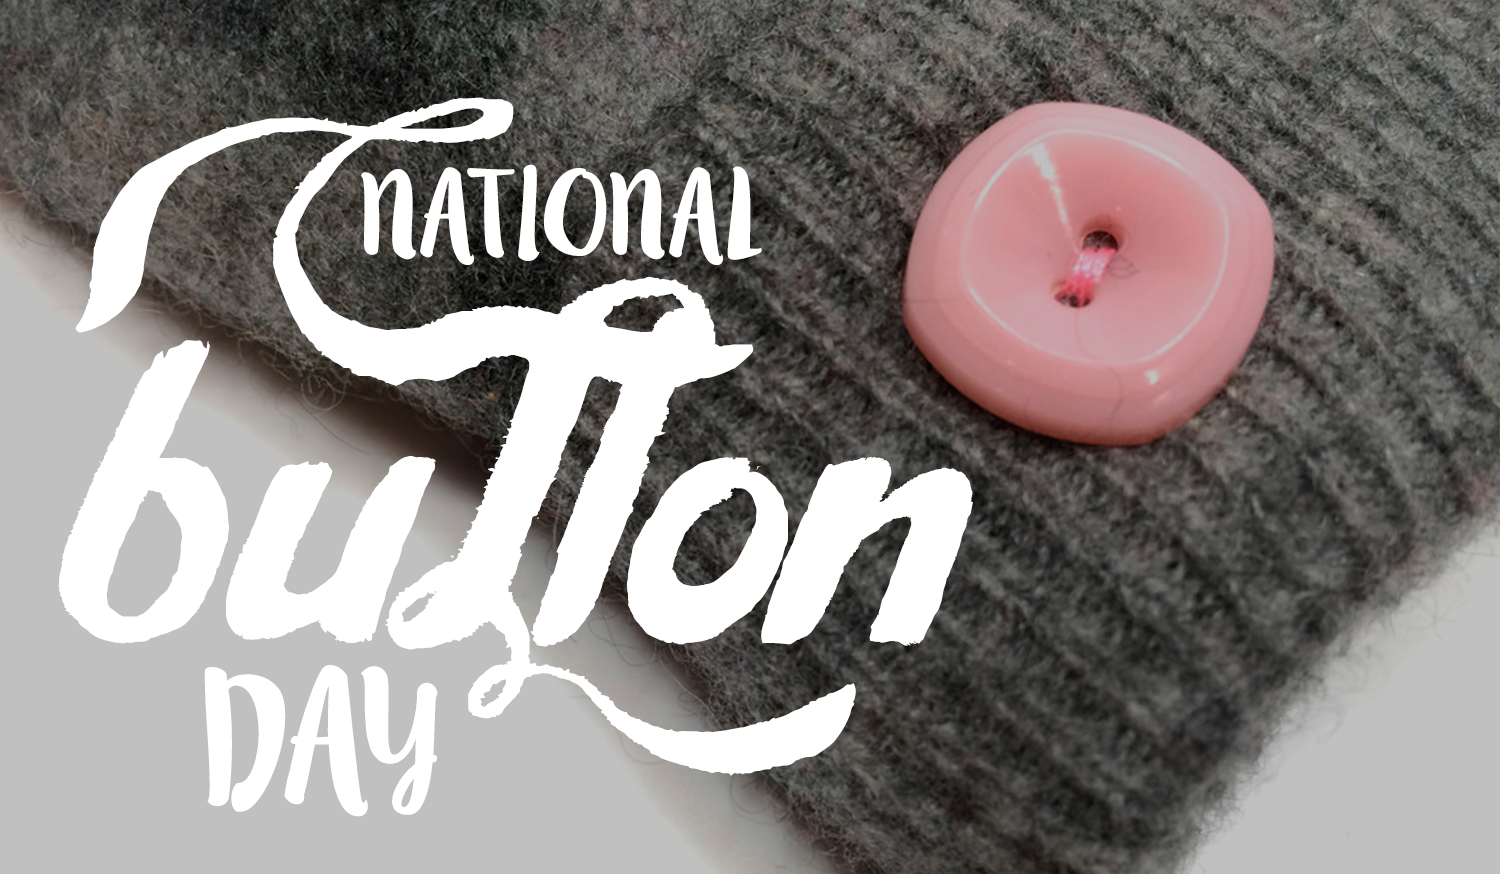 National Button Day at The Mitten Company